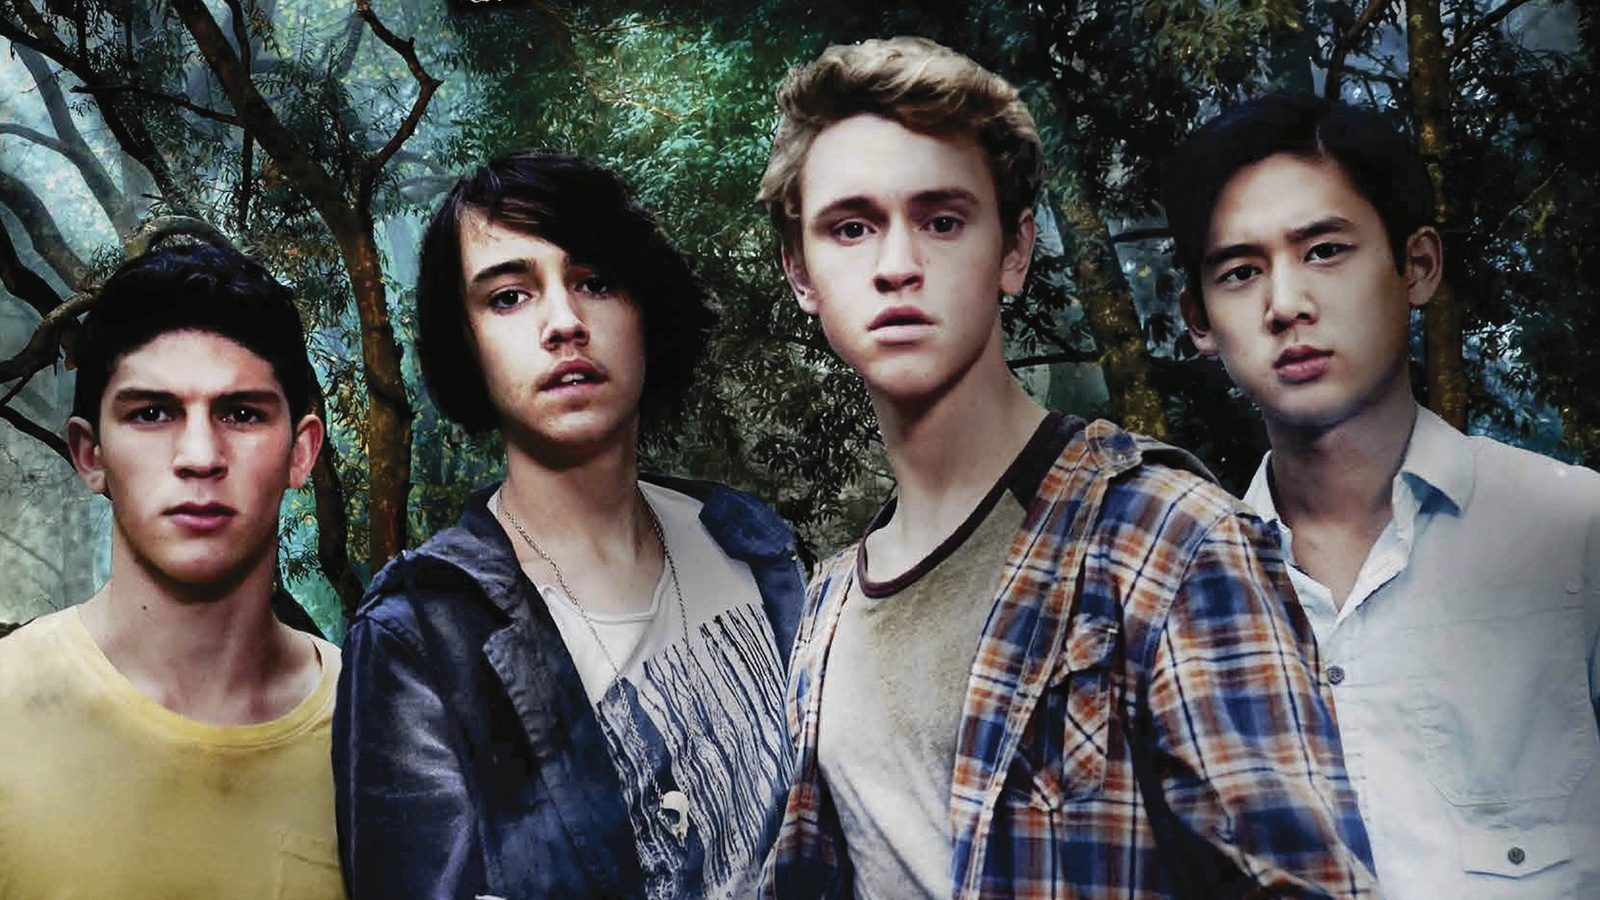 Потерянные/Nowhere Boys background